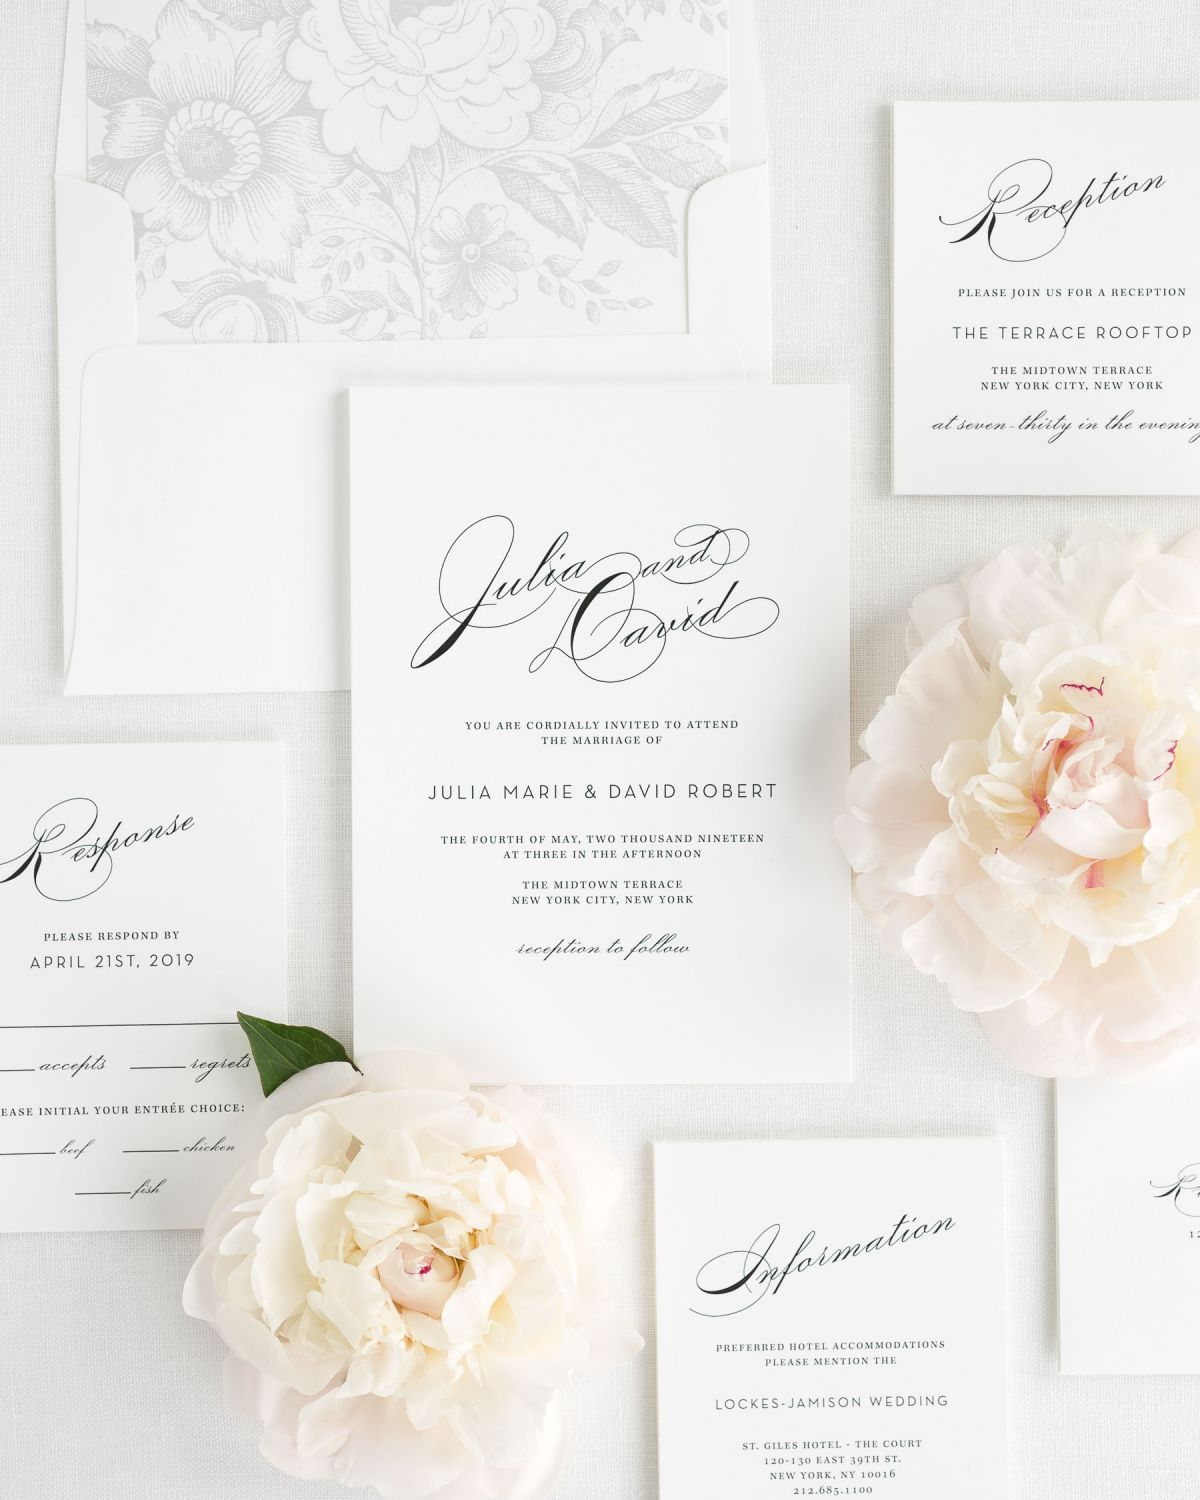 Matchy Matchy Letterpress Invite And Handmade Envelope: Vintage Glam Wedding Invitations In 2019